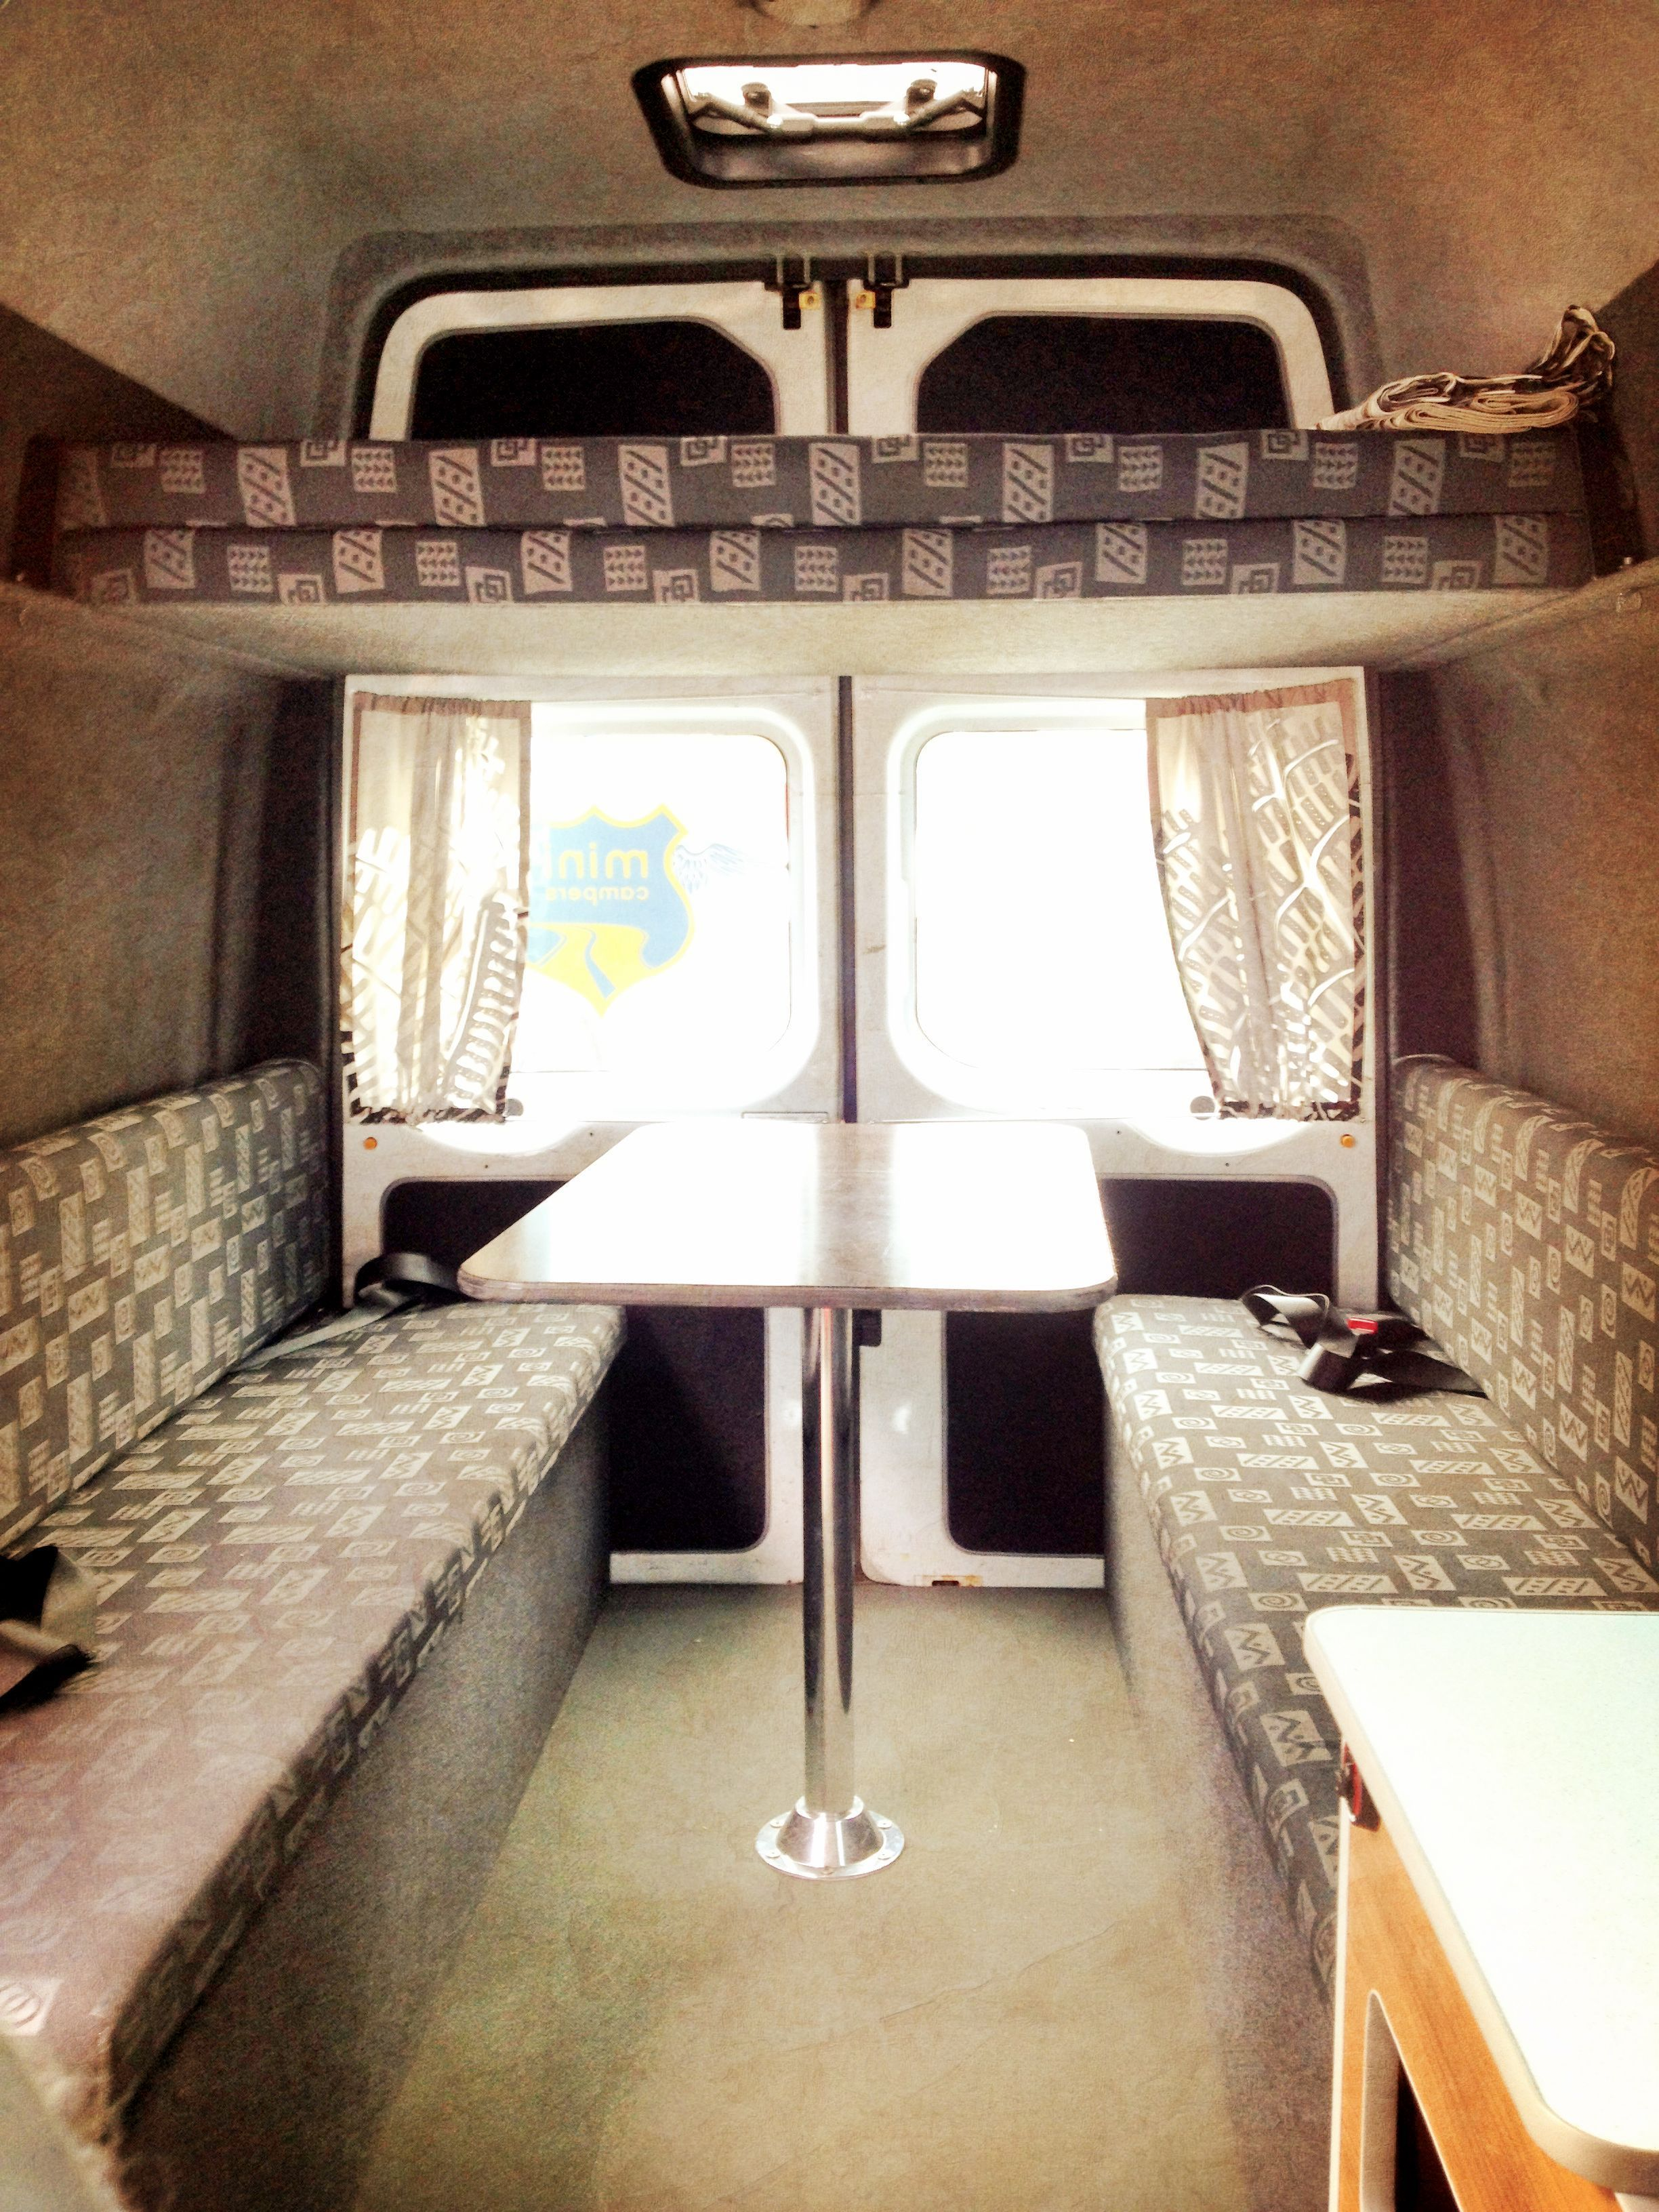 Category C (CA) ford transit - Category C (CA) ford transit -